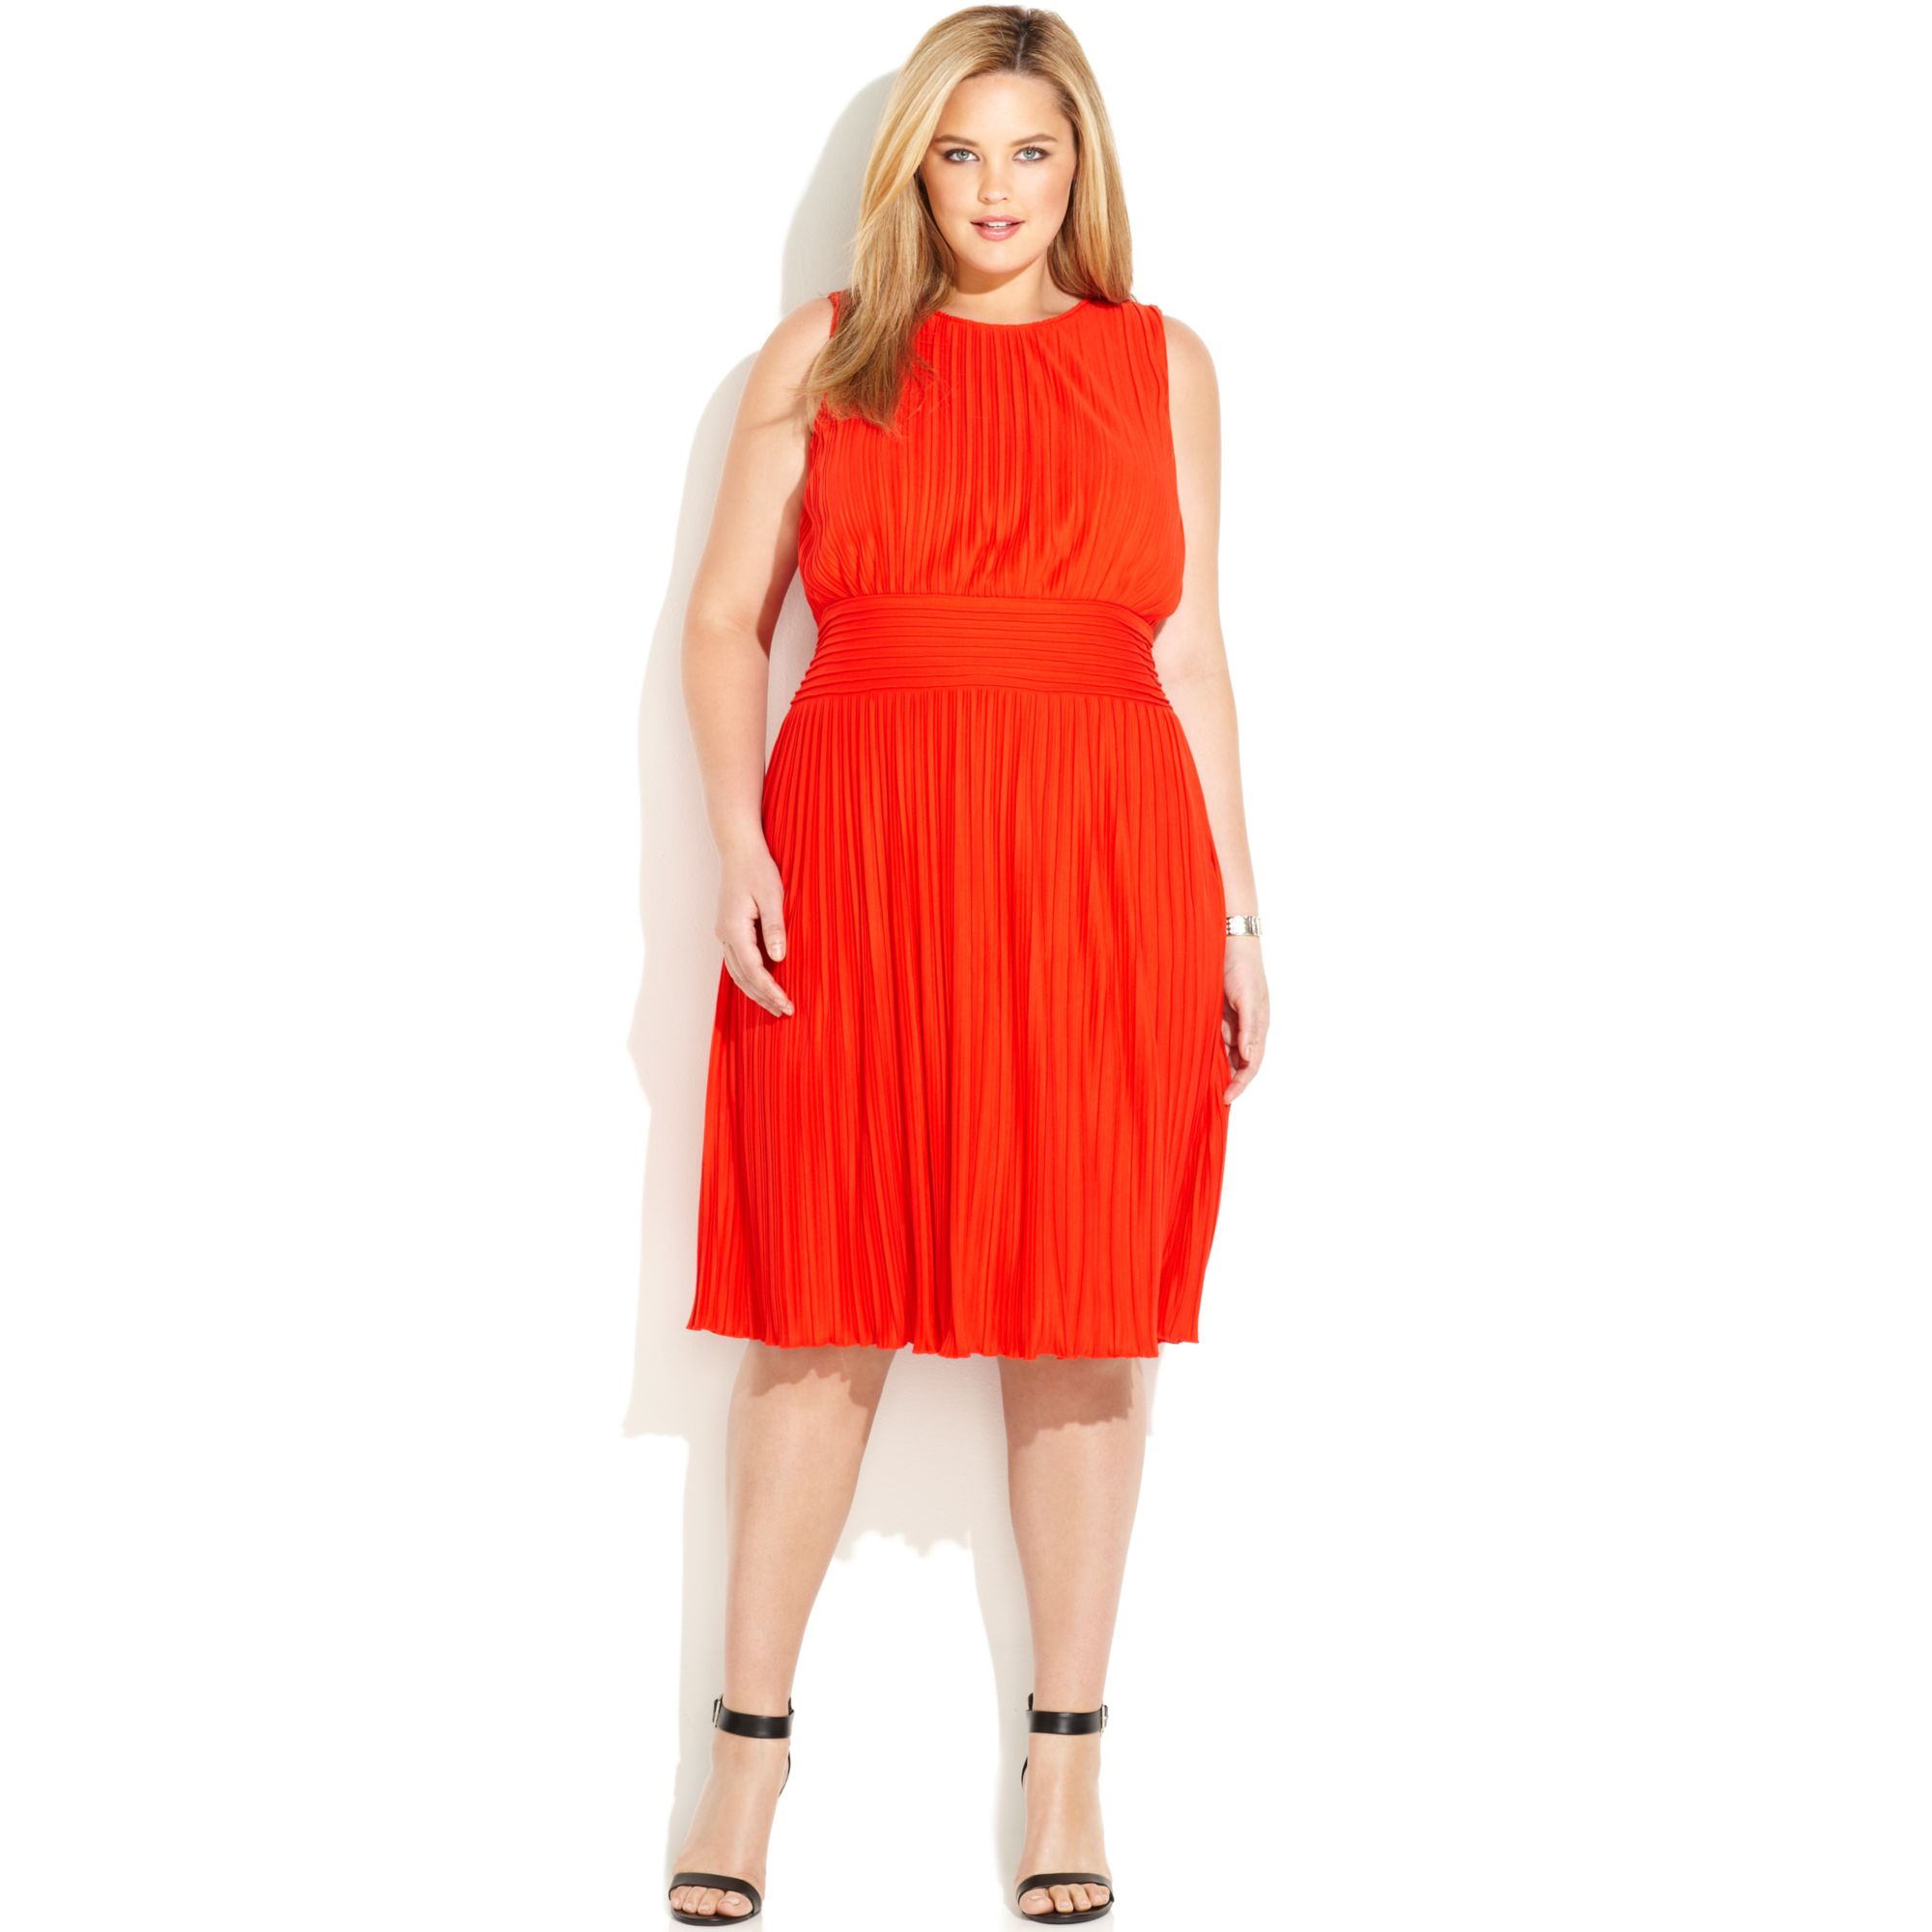 Calvin Klein Plus Size Sleeveless Pleated Dress in Red - Lyst